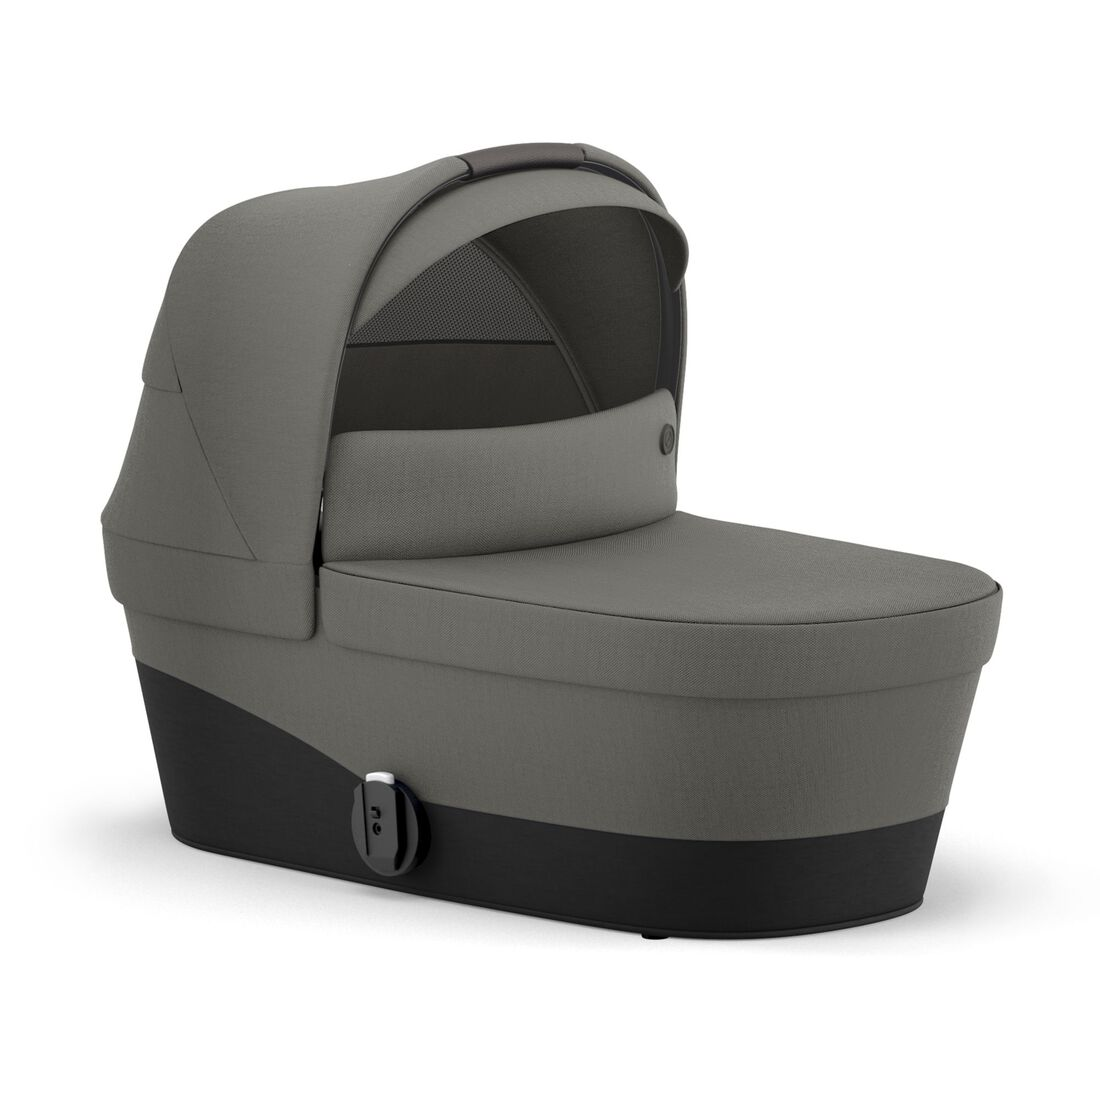 CYBEX Gazelle S Cot - Soho Grey in Soho Grey large Bild 1